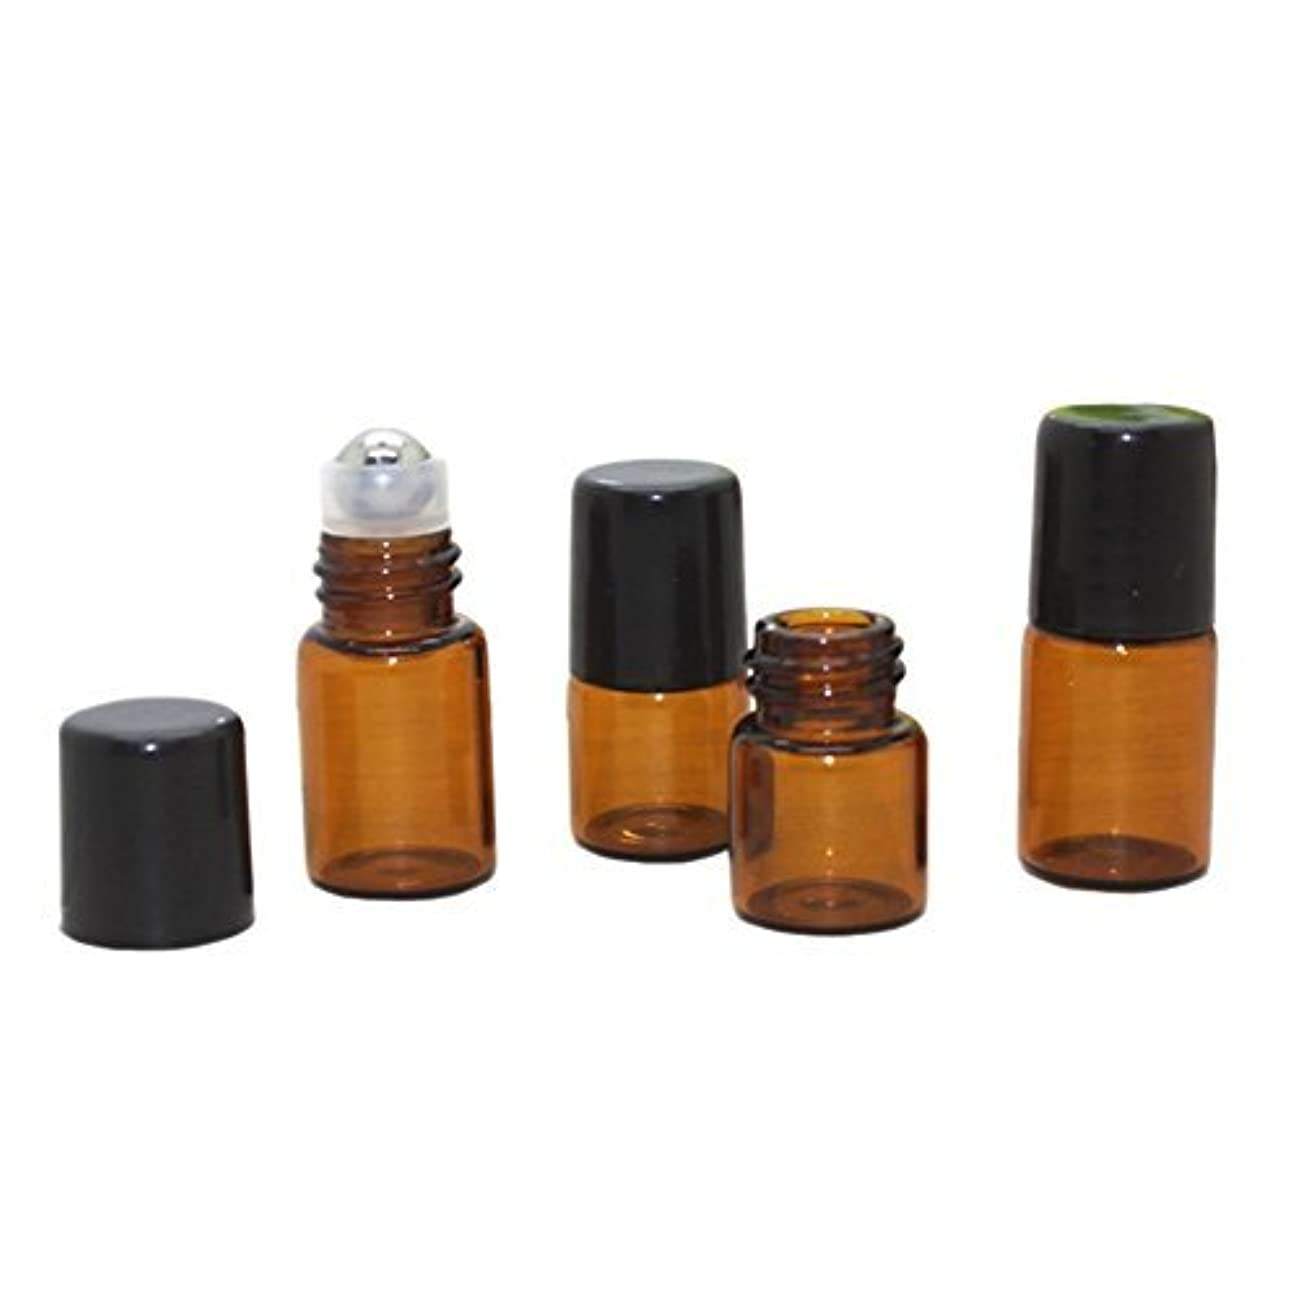 HugeStore 25 Pcs Mini Tiny Refillable Empty Essential Oil Glass Roller Bottles Aromatherapy Liquid Amber Glass...